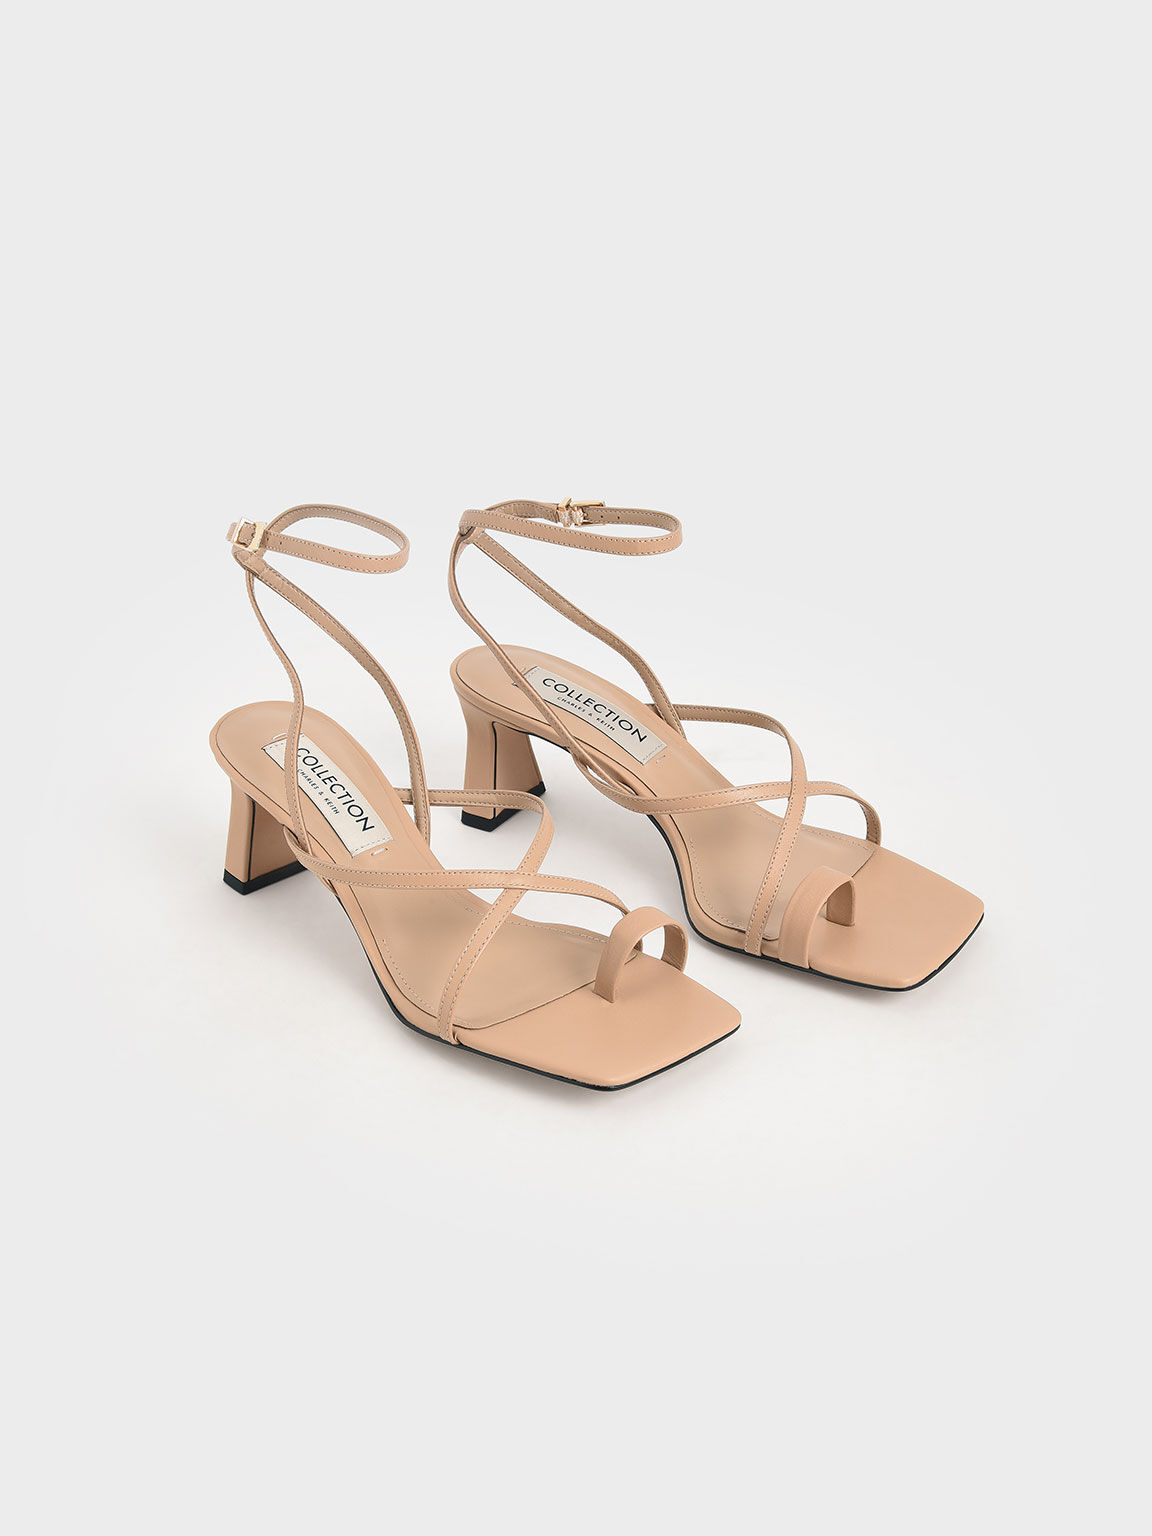 Leather Strappy Crossover Sandals, Nude, hi-res